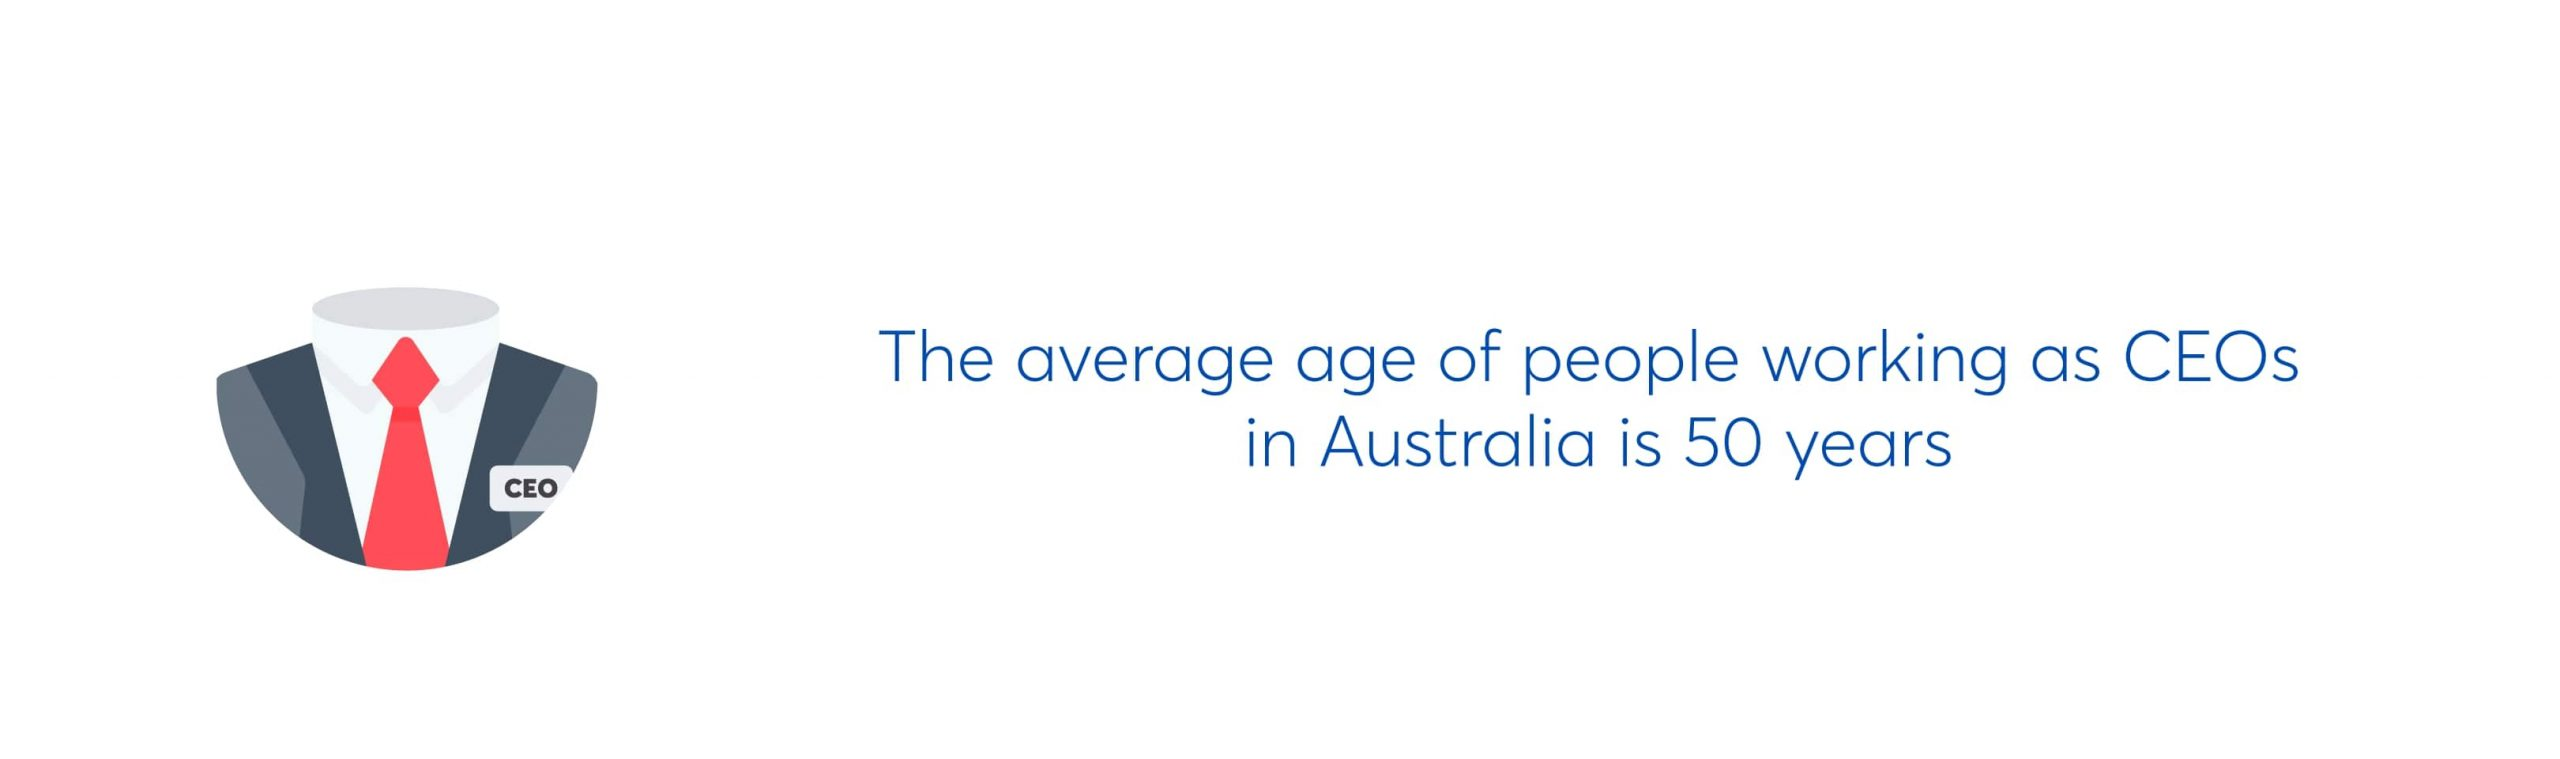 the average age of people working as CEOs in australia is 50 years